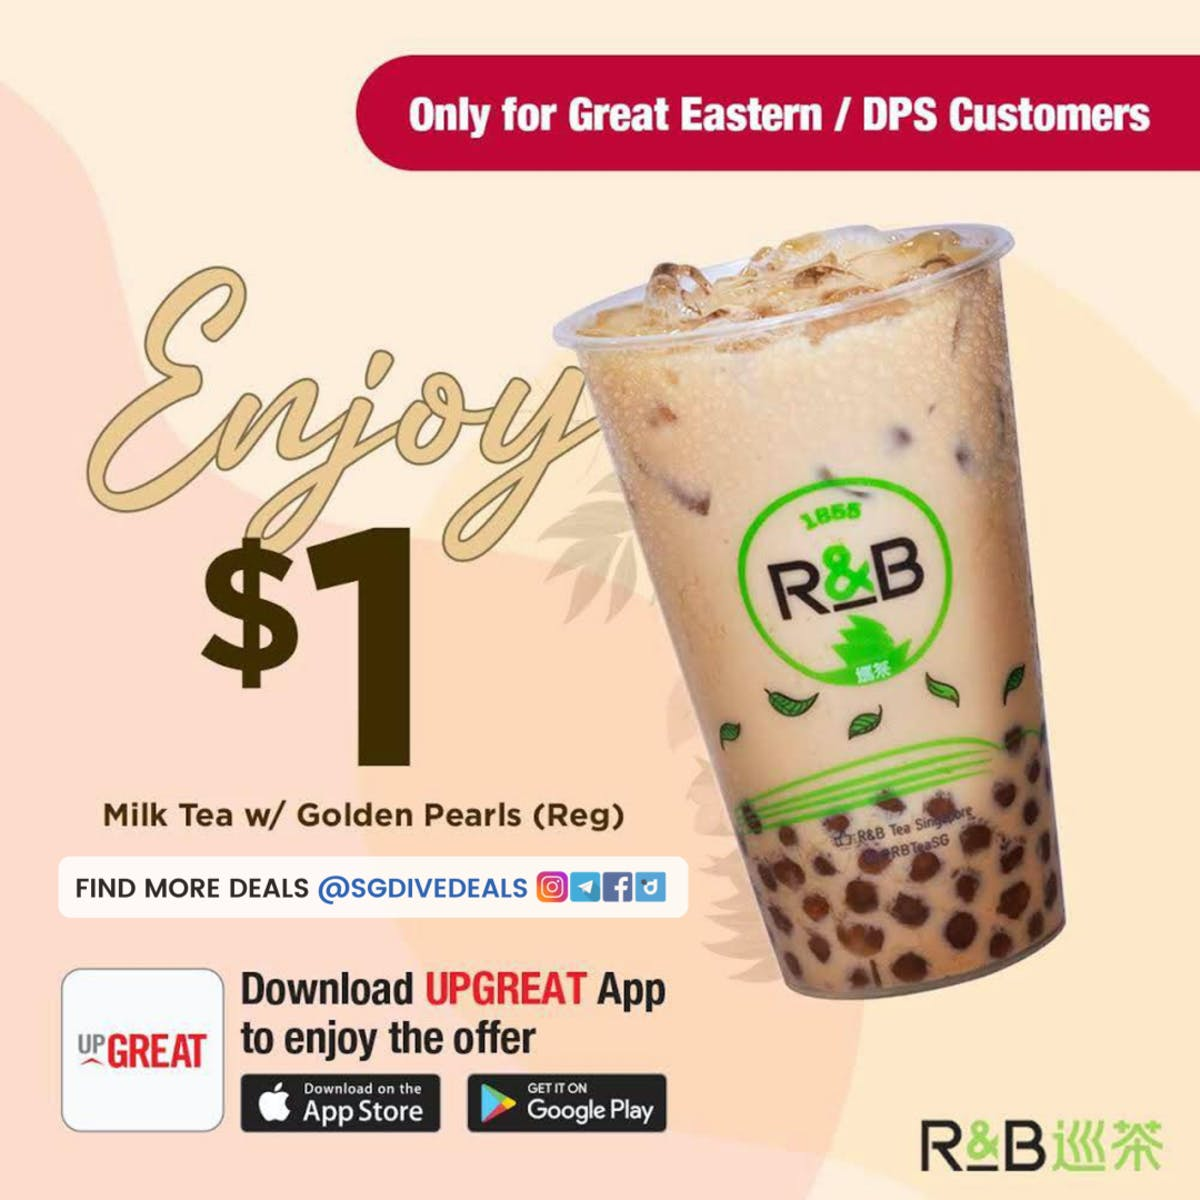 $1 R&B Bubble Tea FOR GREAT Eastern and DPS Customers